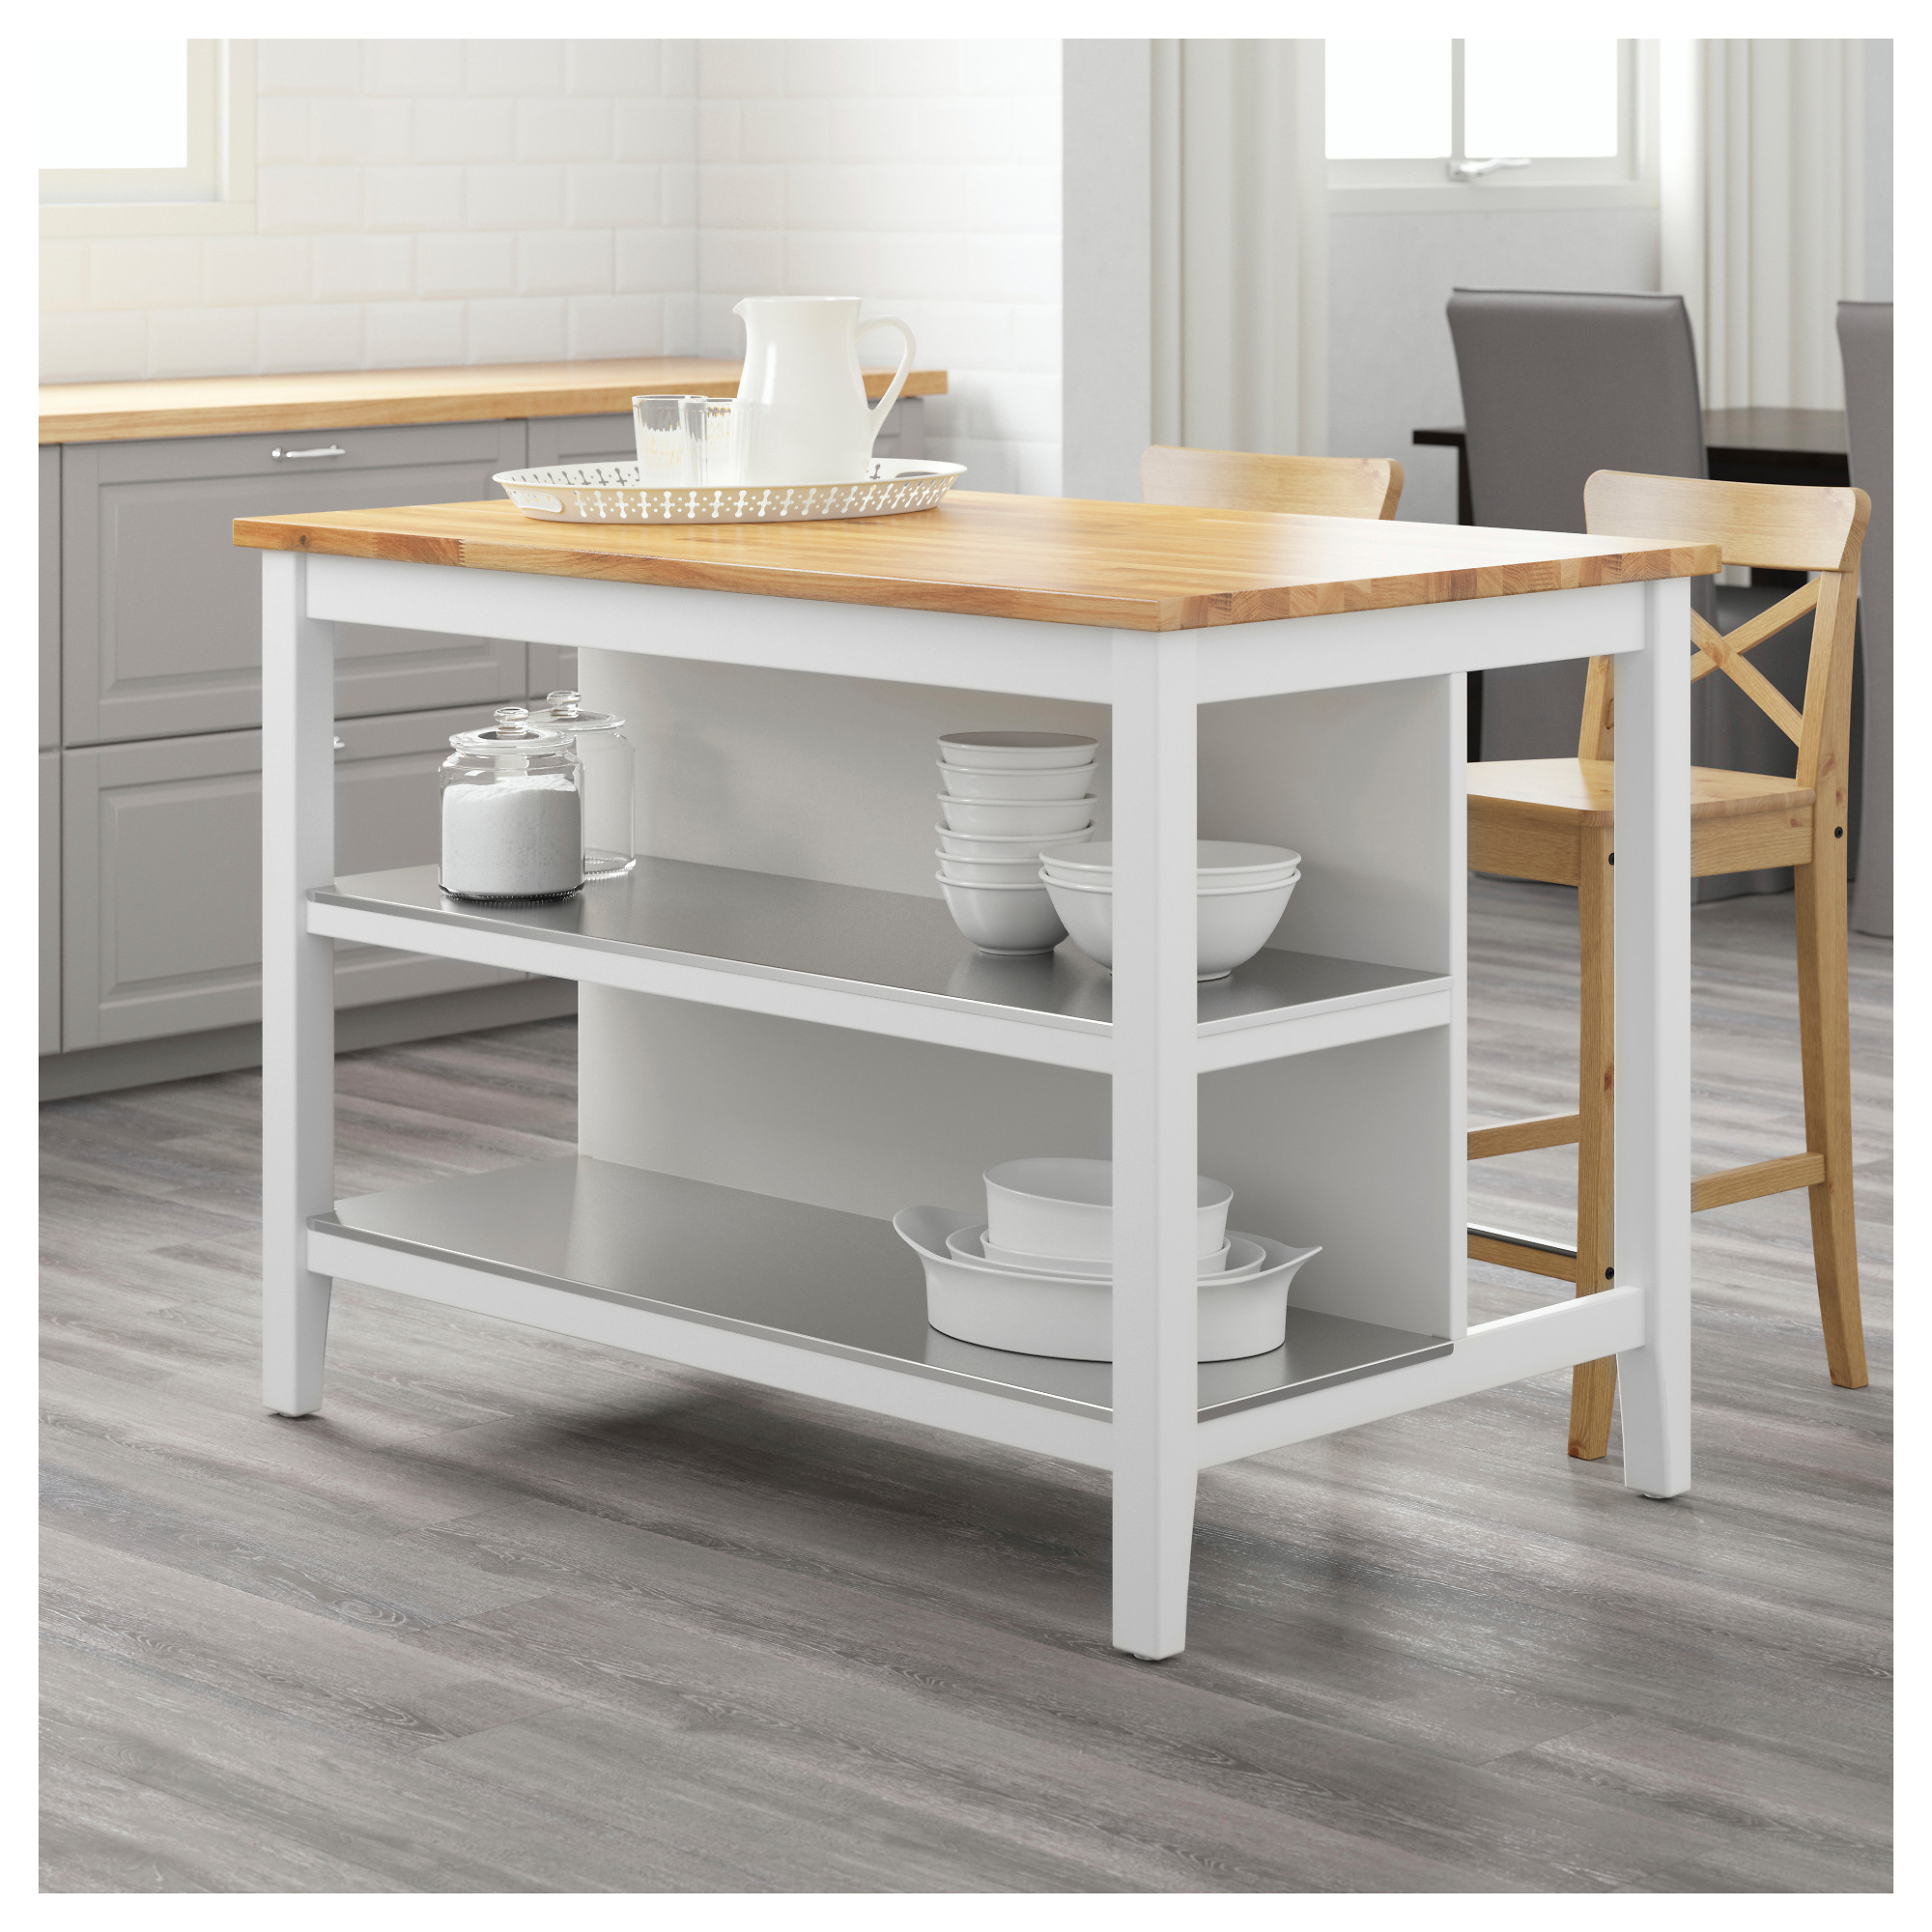 furniture stenstorp kitchen island ikea kitchen carts kitchen